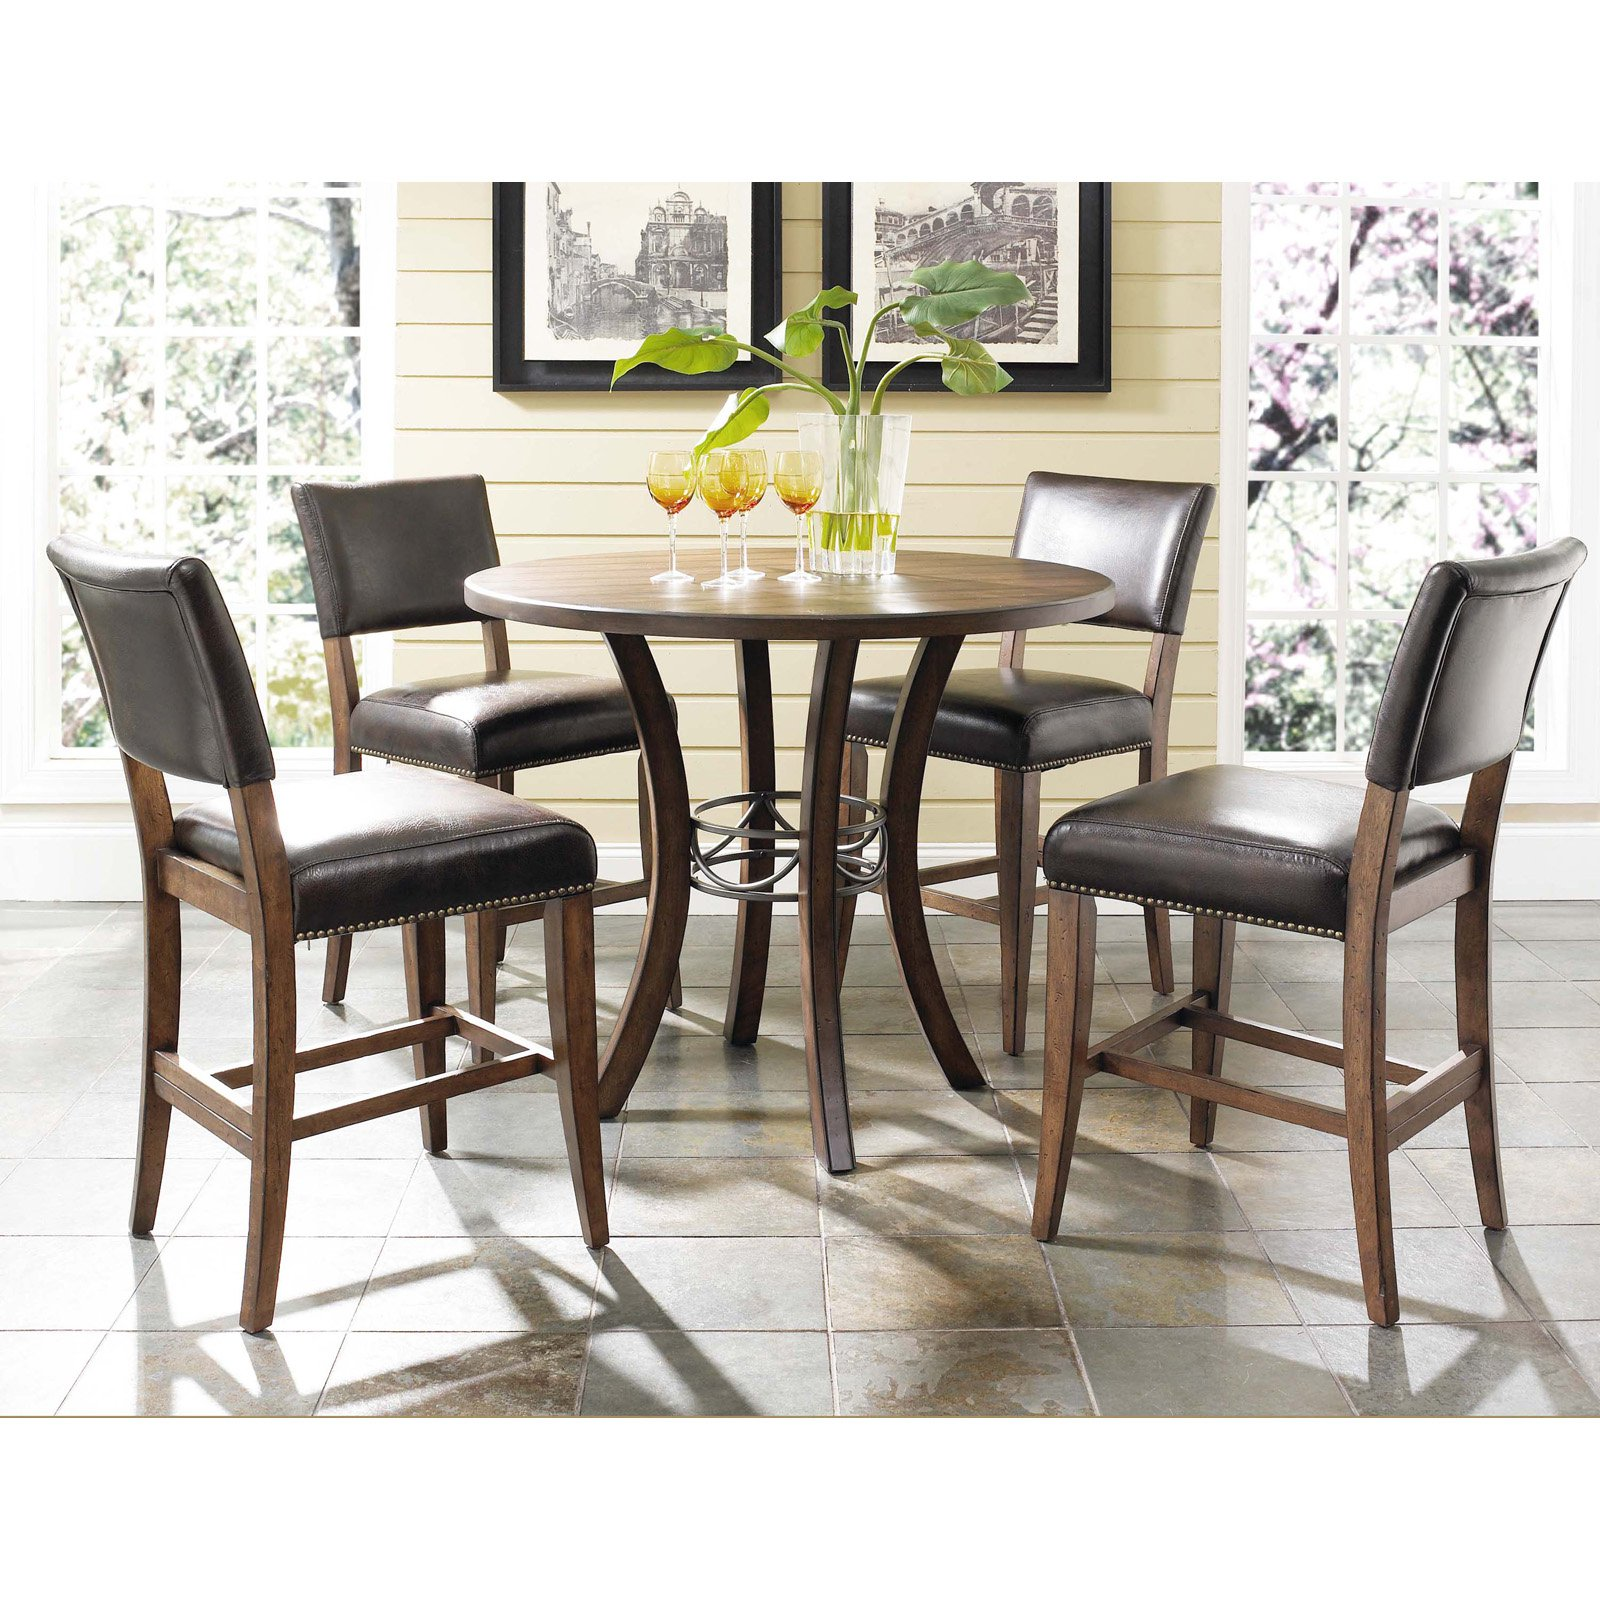 Hillsdale cameron 5 piece counter height round wood dining table set with parson chairs walmart com